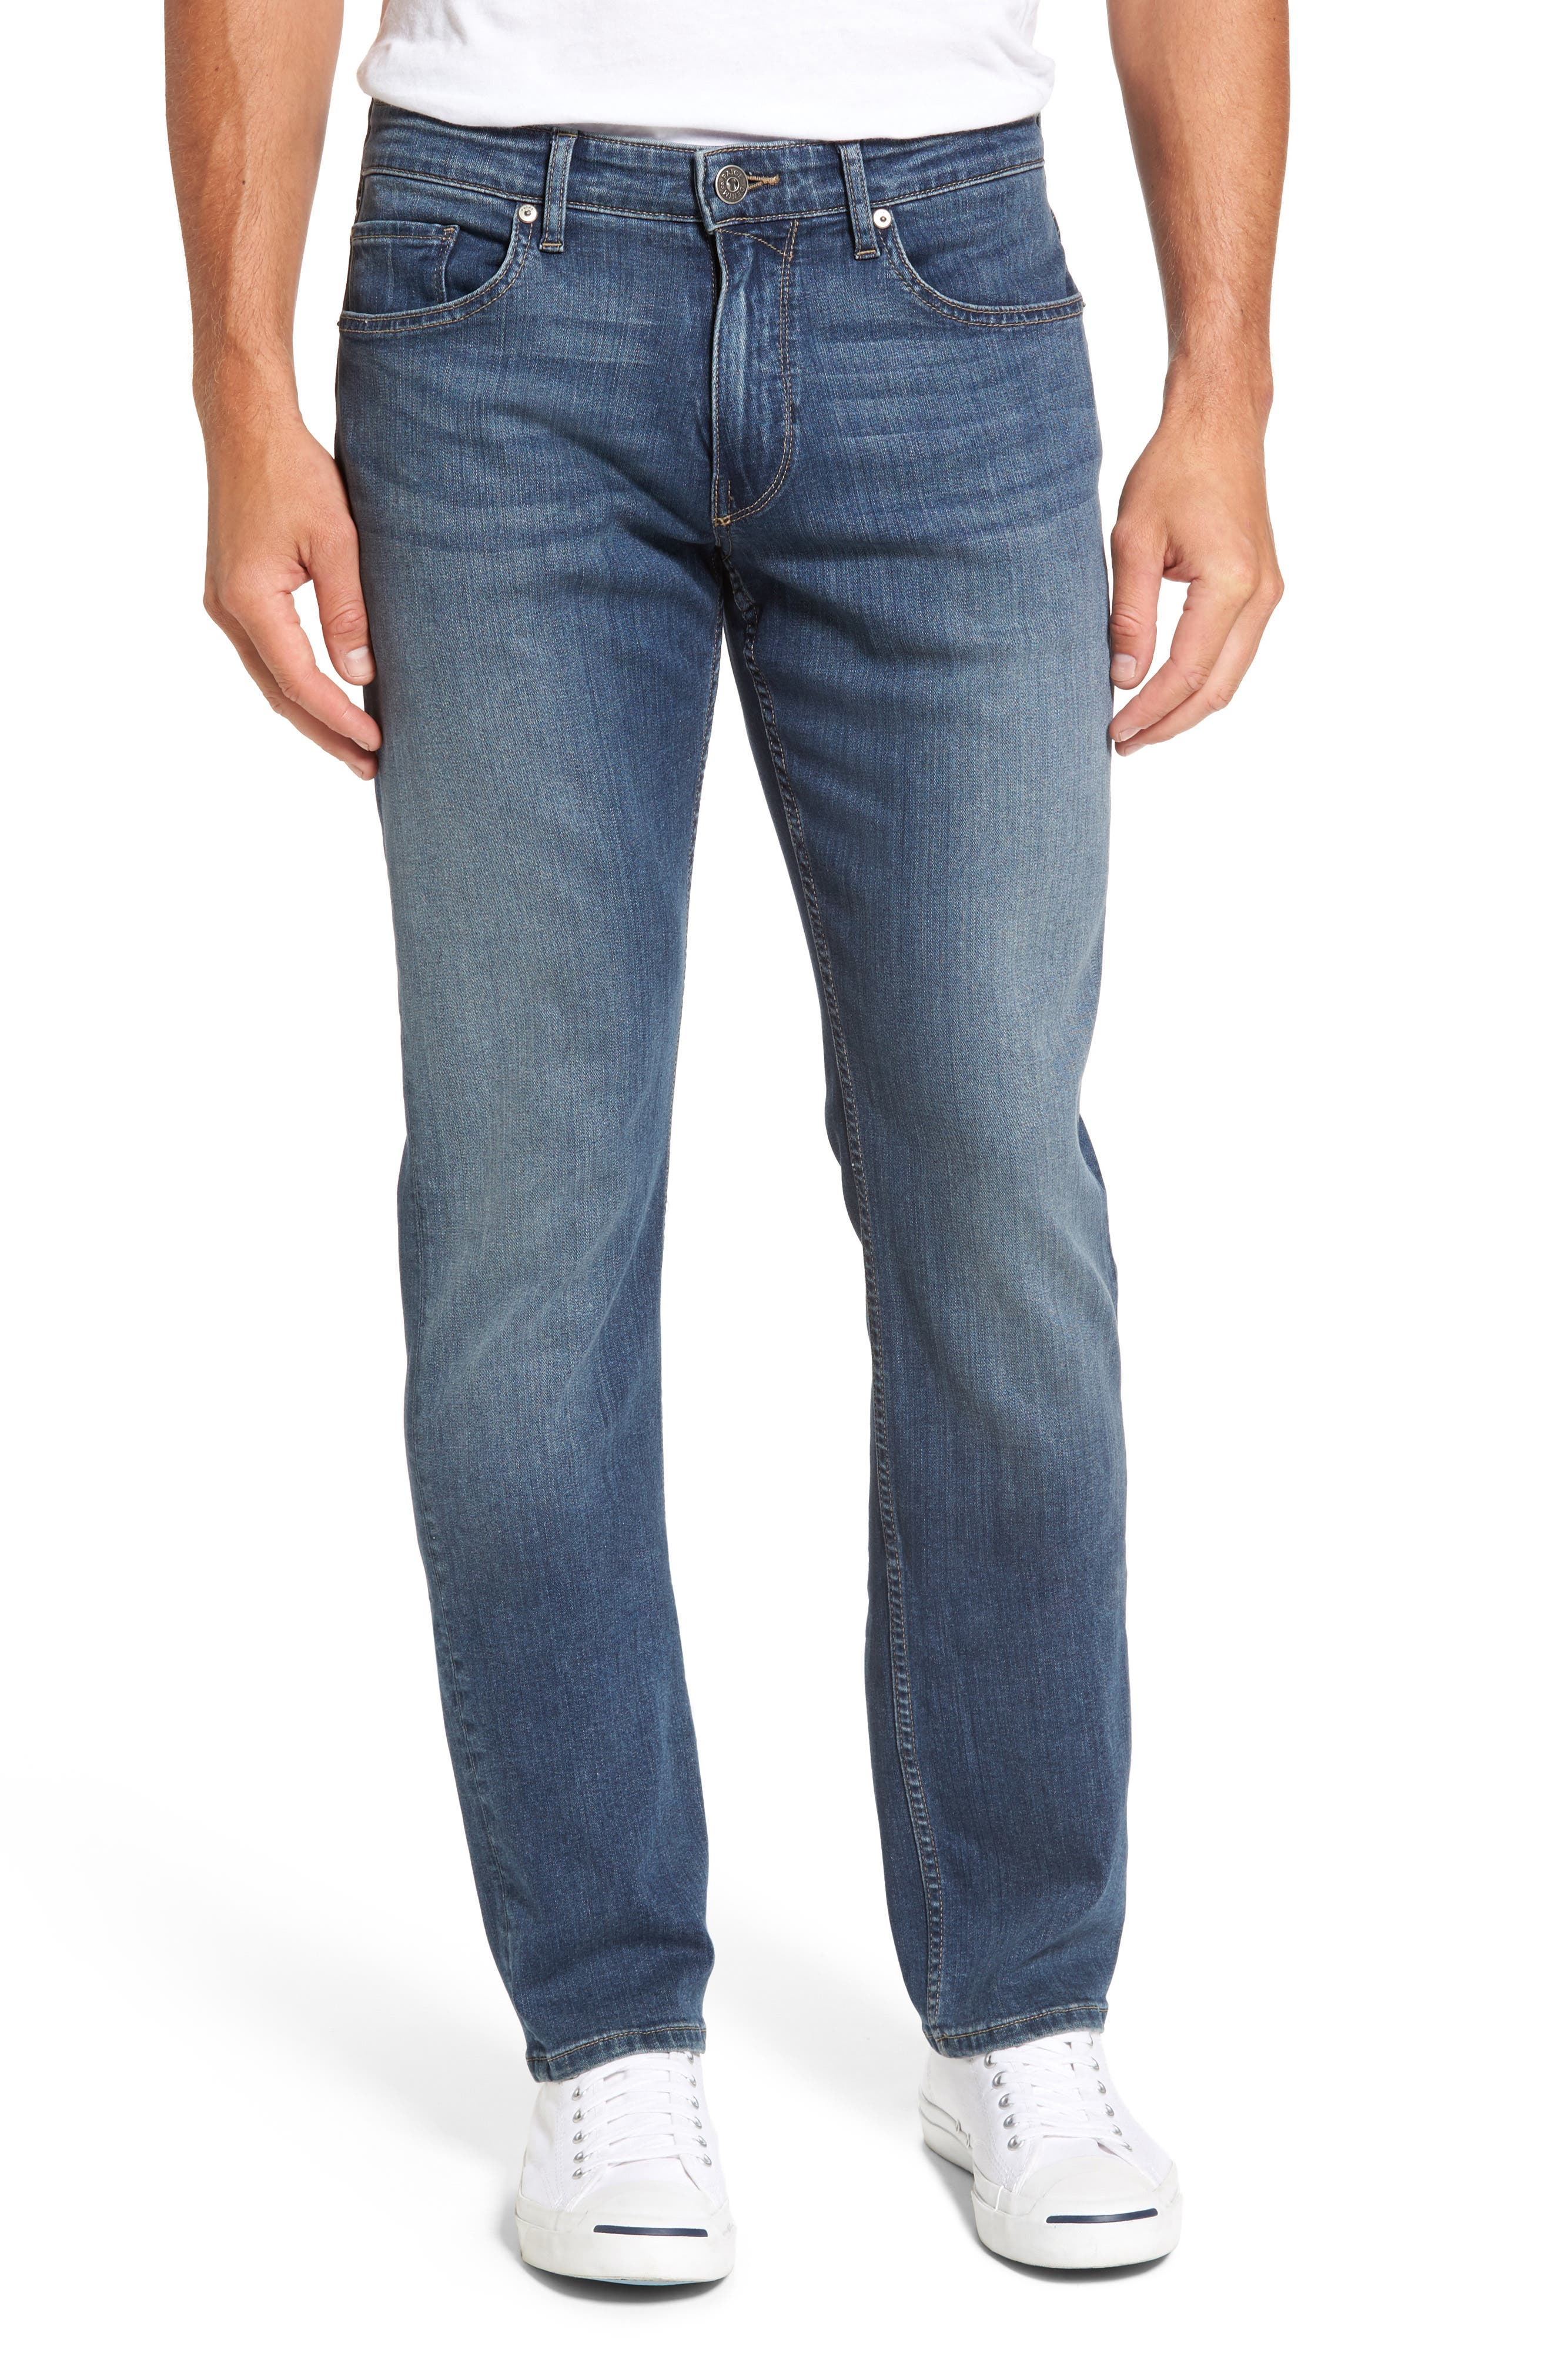 Normandie Straight Fit Jeans,                         Main,                         color, Almont